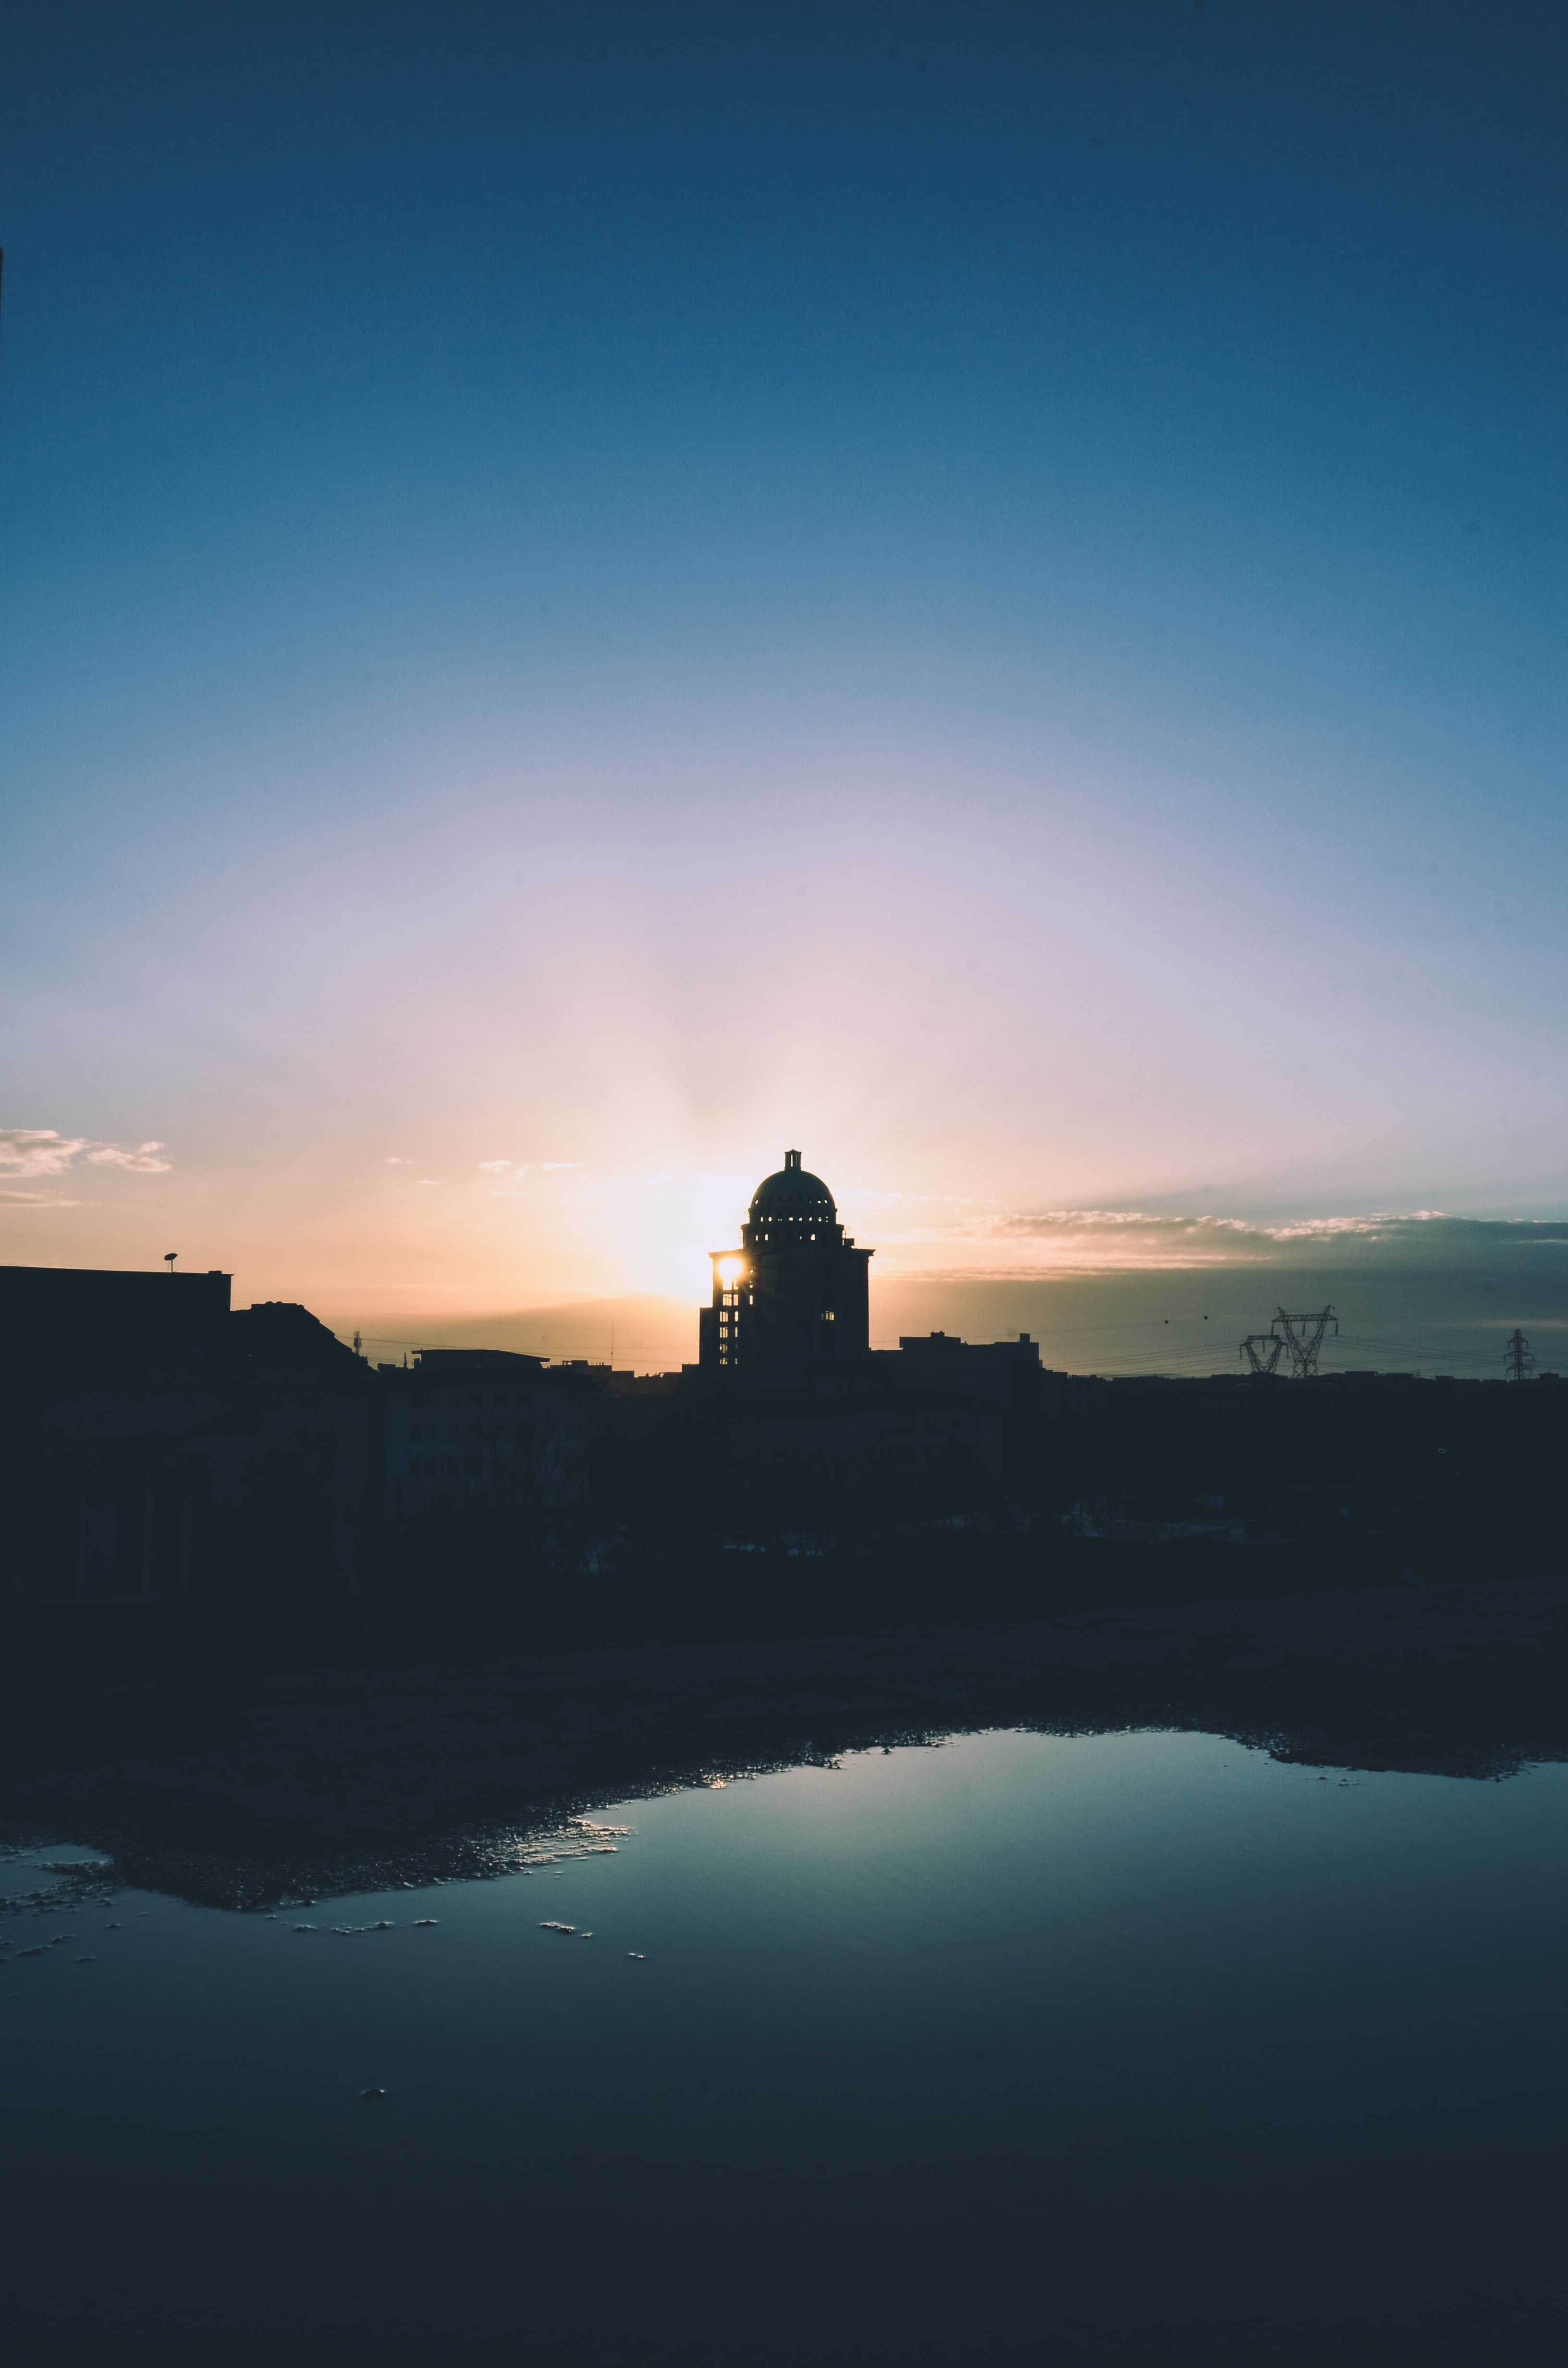 silhouette photography of building near body of water